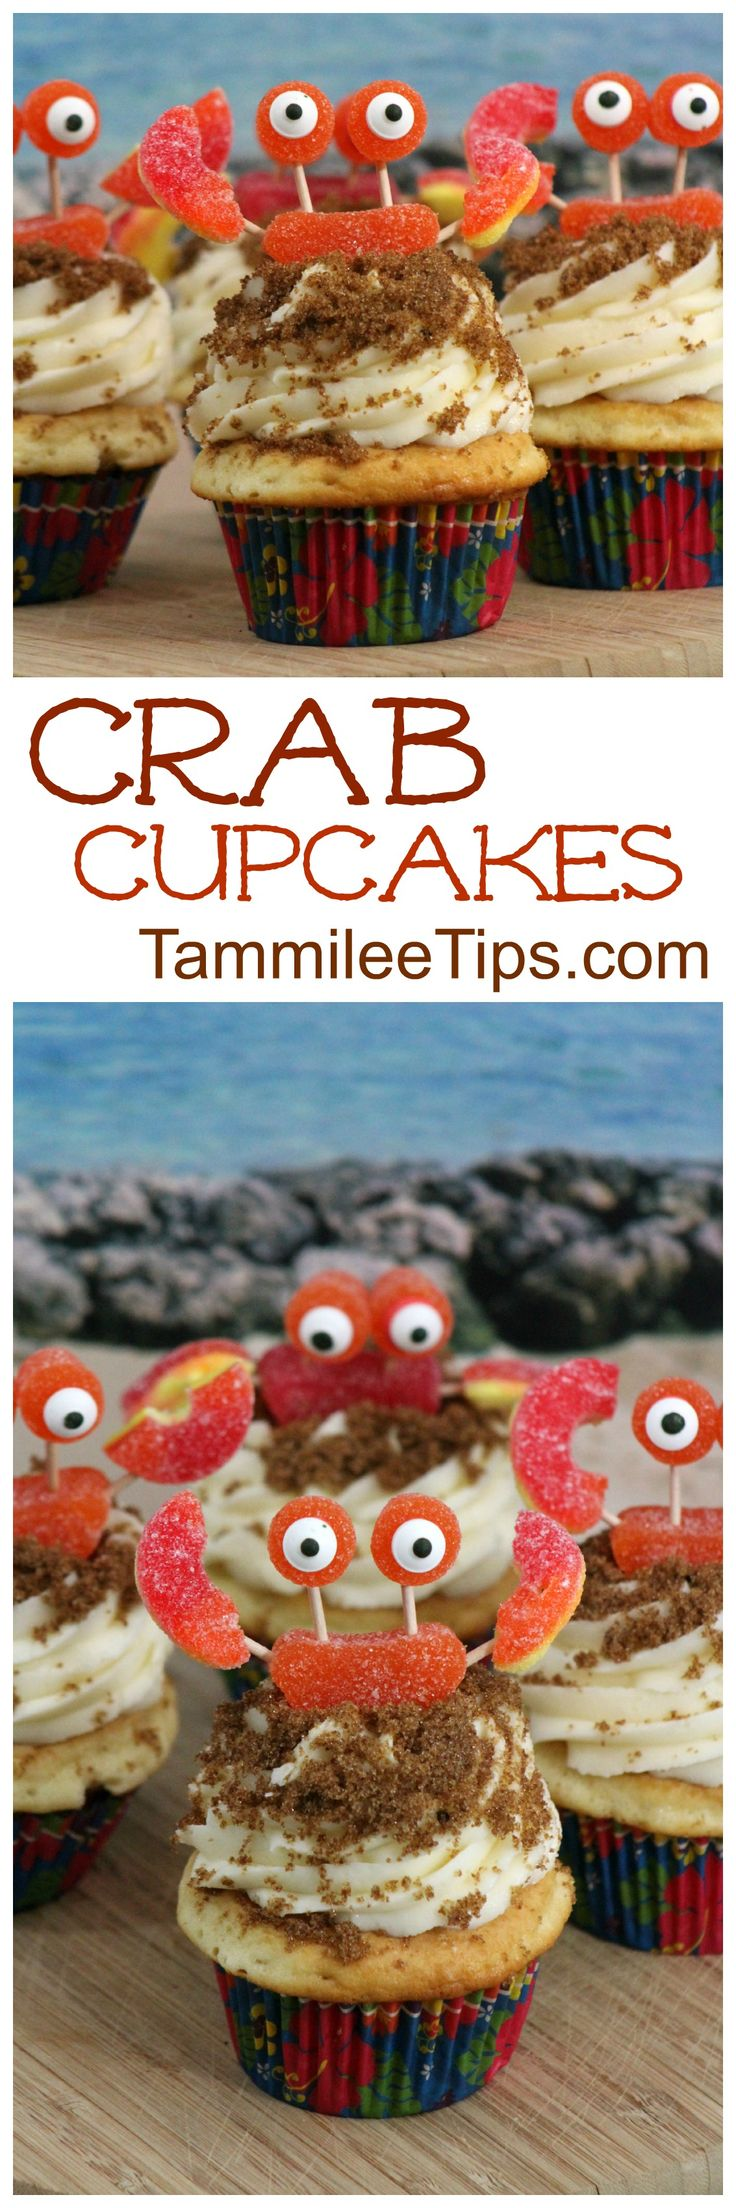 How+to+make+seriously+oh+so+cute+Crab+Cupcakes!+Perfect+for+Under+the+Sea+Ocean+birthday+parties,+baby+showers,+Moana,+Little+Mermaid+parties+via+@tammileetips